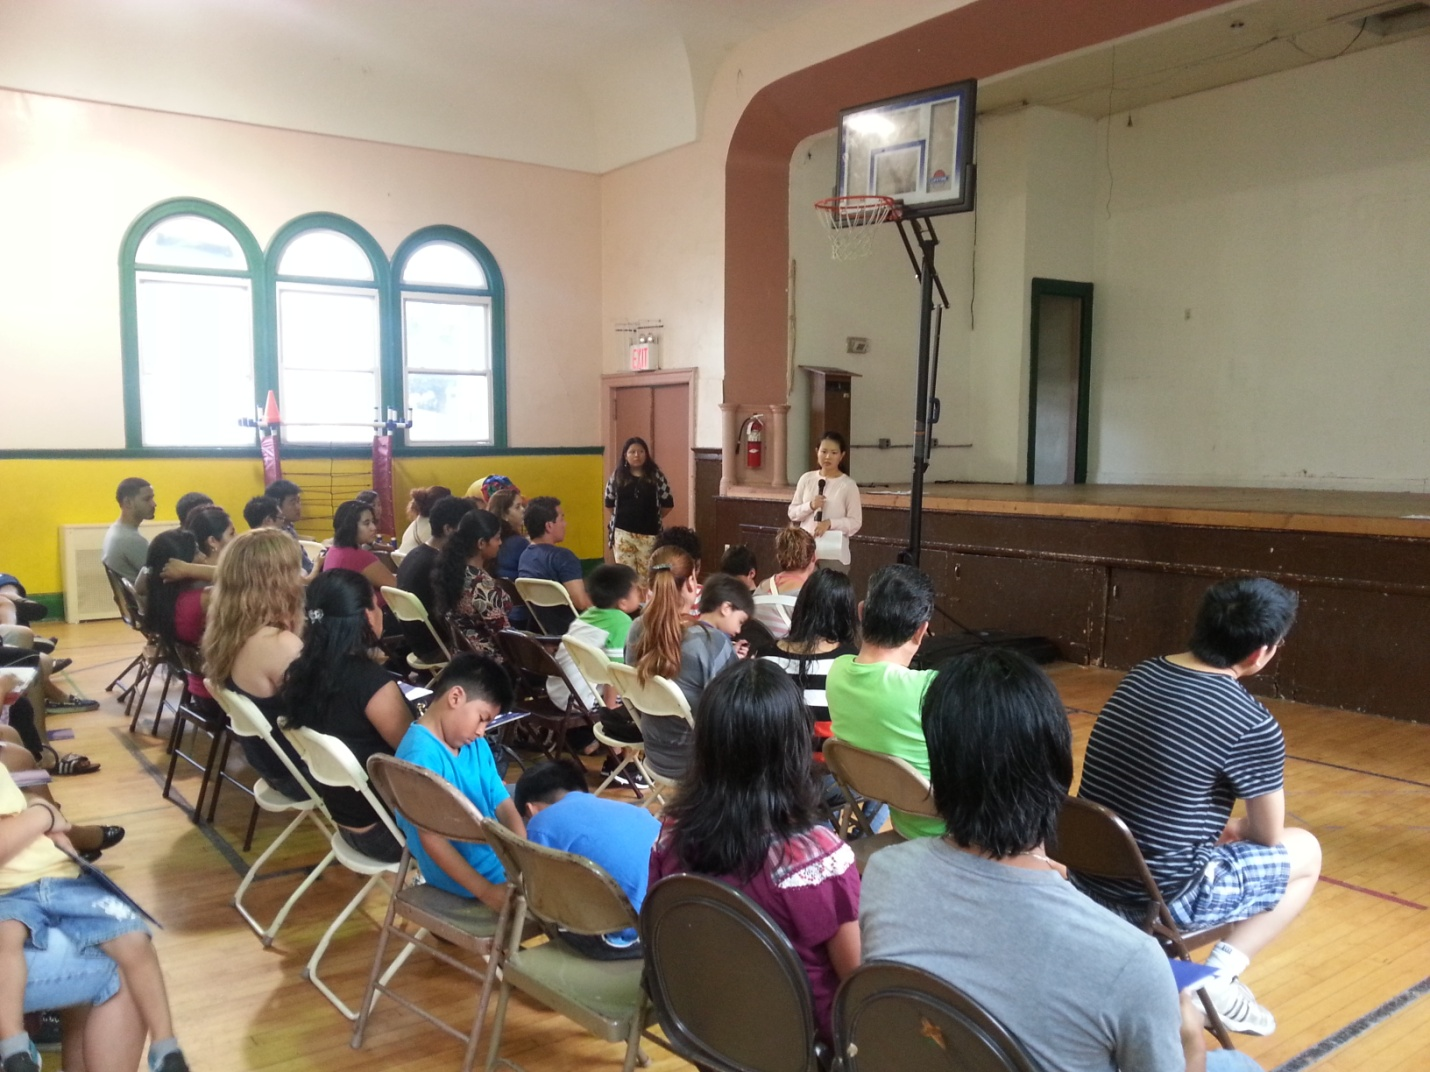 Tsui Yee of Guerrero-Yee LP presented a Deferred Action workshop to undocumented youth and parents.